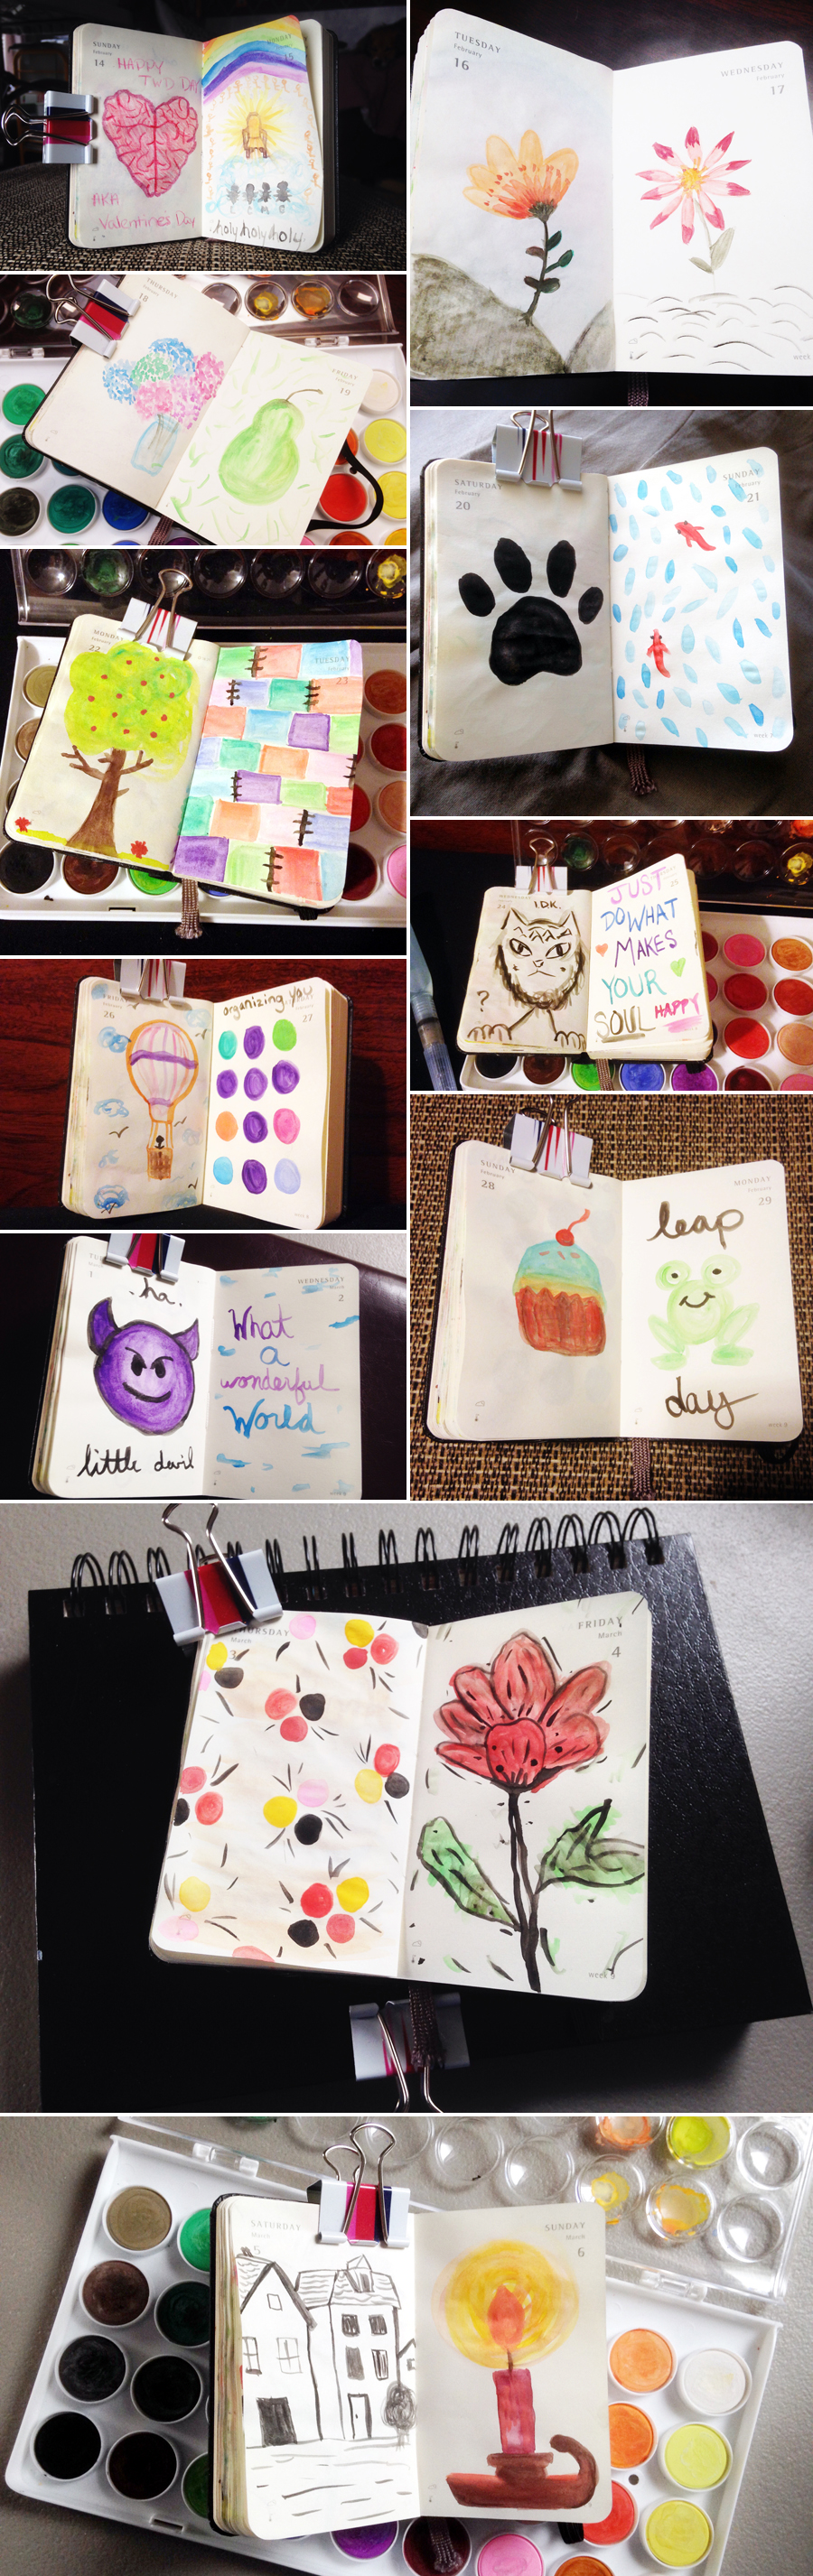 EHStudios - Make Art Every Day - Project 366 - Moleskine Planner